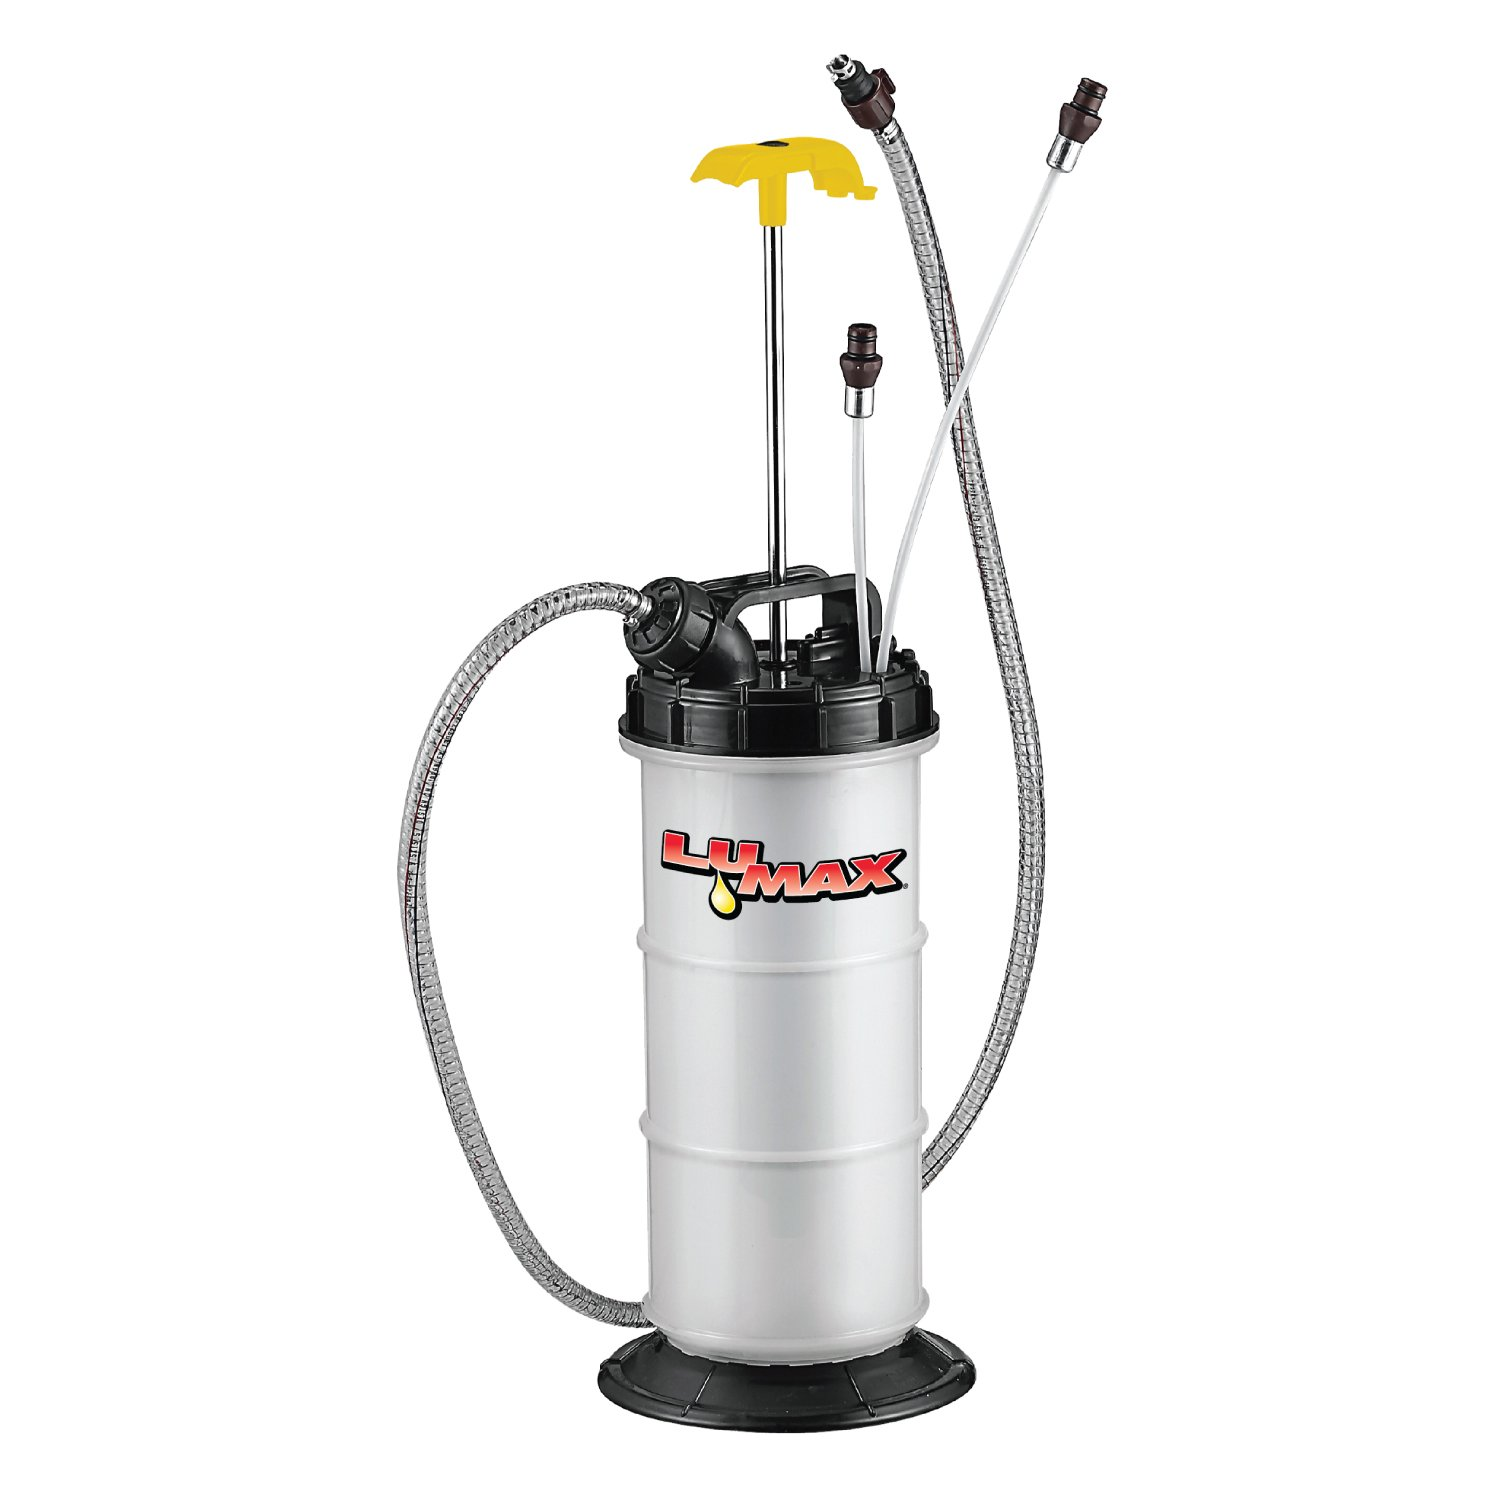 Lumax LX-1311 Extractor, 1.6G (6L) Capacity. Ideal Suitable for Brake, Engine, Gear Oil, Transmission Fluid, Water, etc. Easy Manual Pump Operation by Lumax